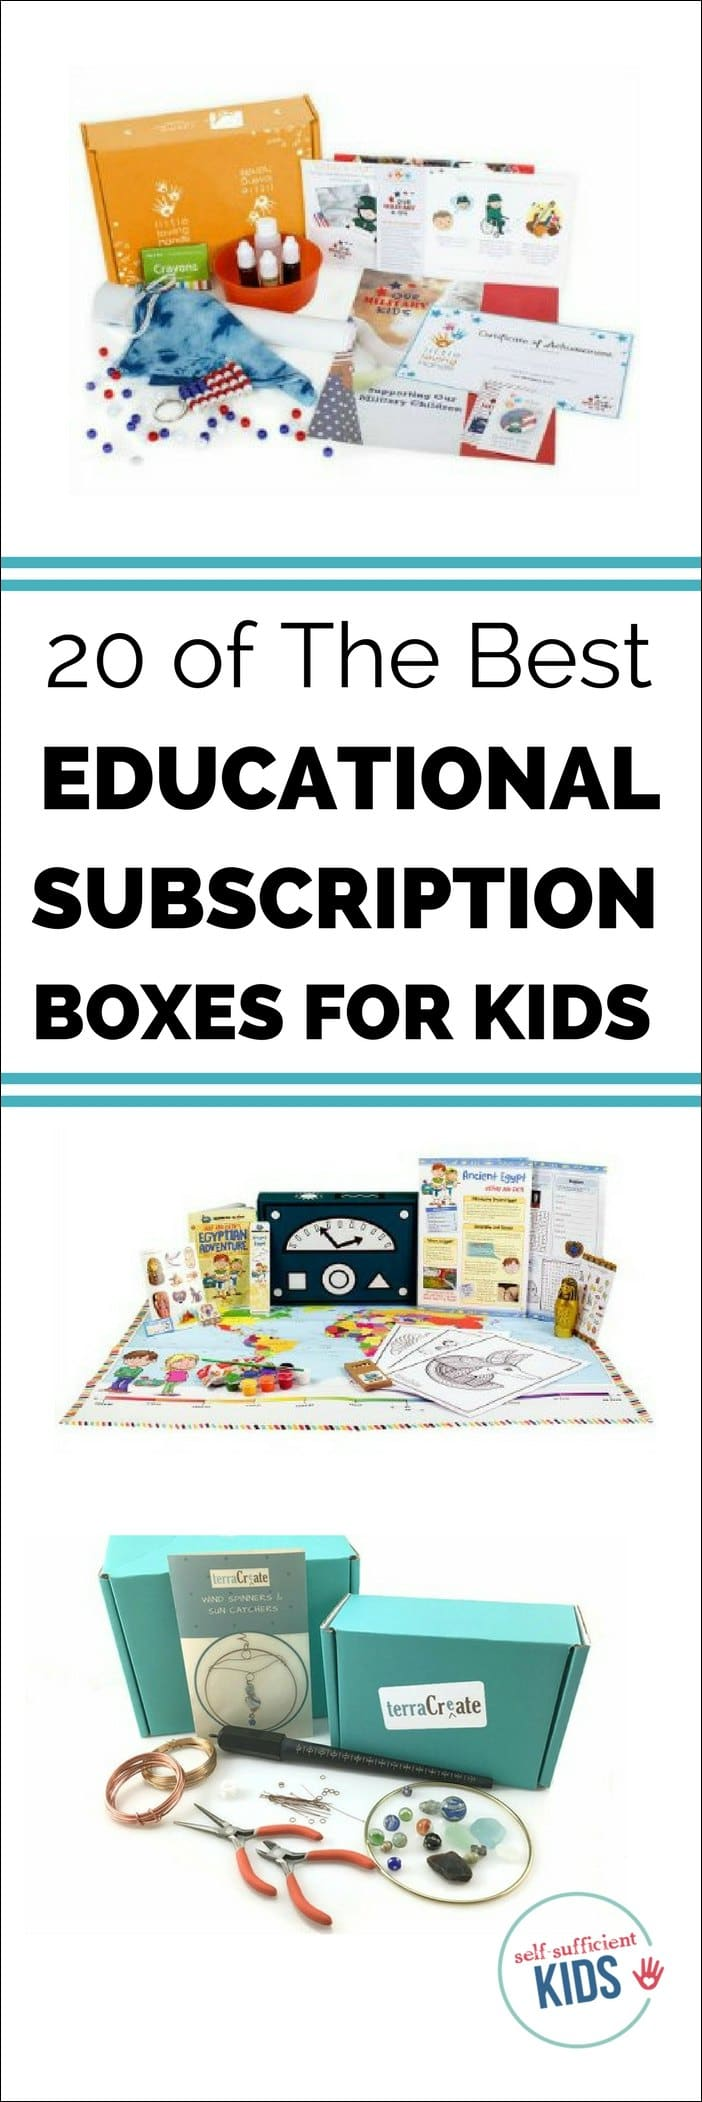 Educational subscription boxes for kids are a great way to enhance a child's interest in a subject or expose them to new ideas. They also make great gifts! The only problem is there are so many of them - how to choose? This list can help. #subscriptionboxesforkids